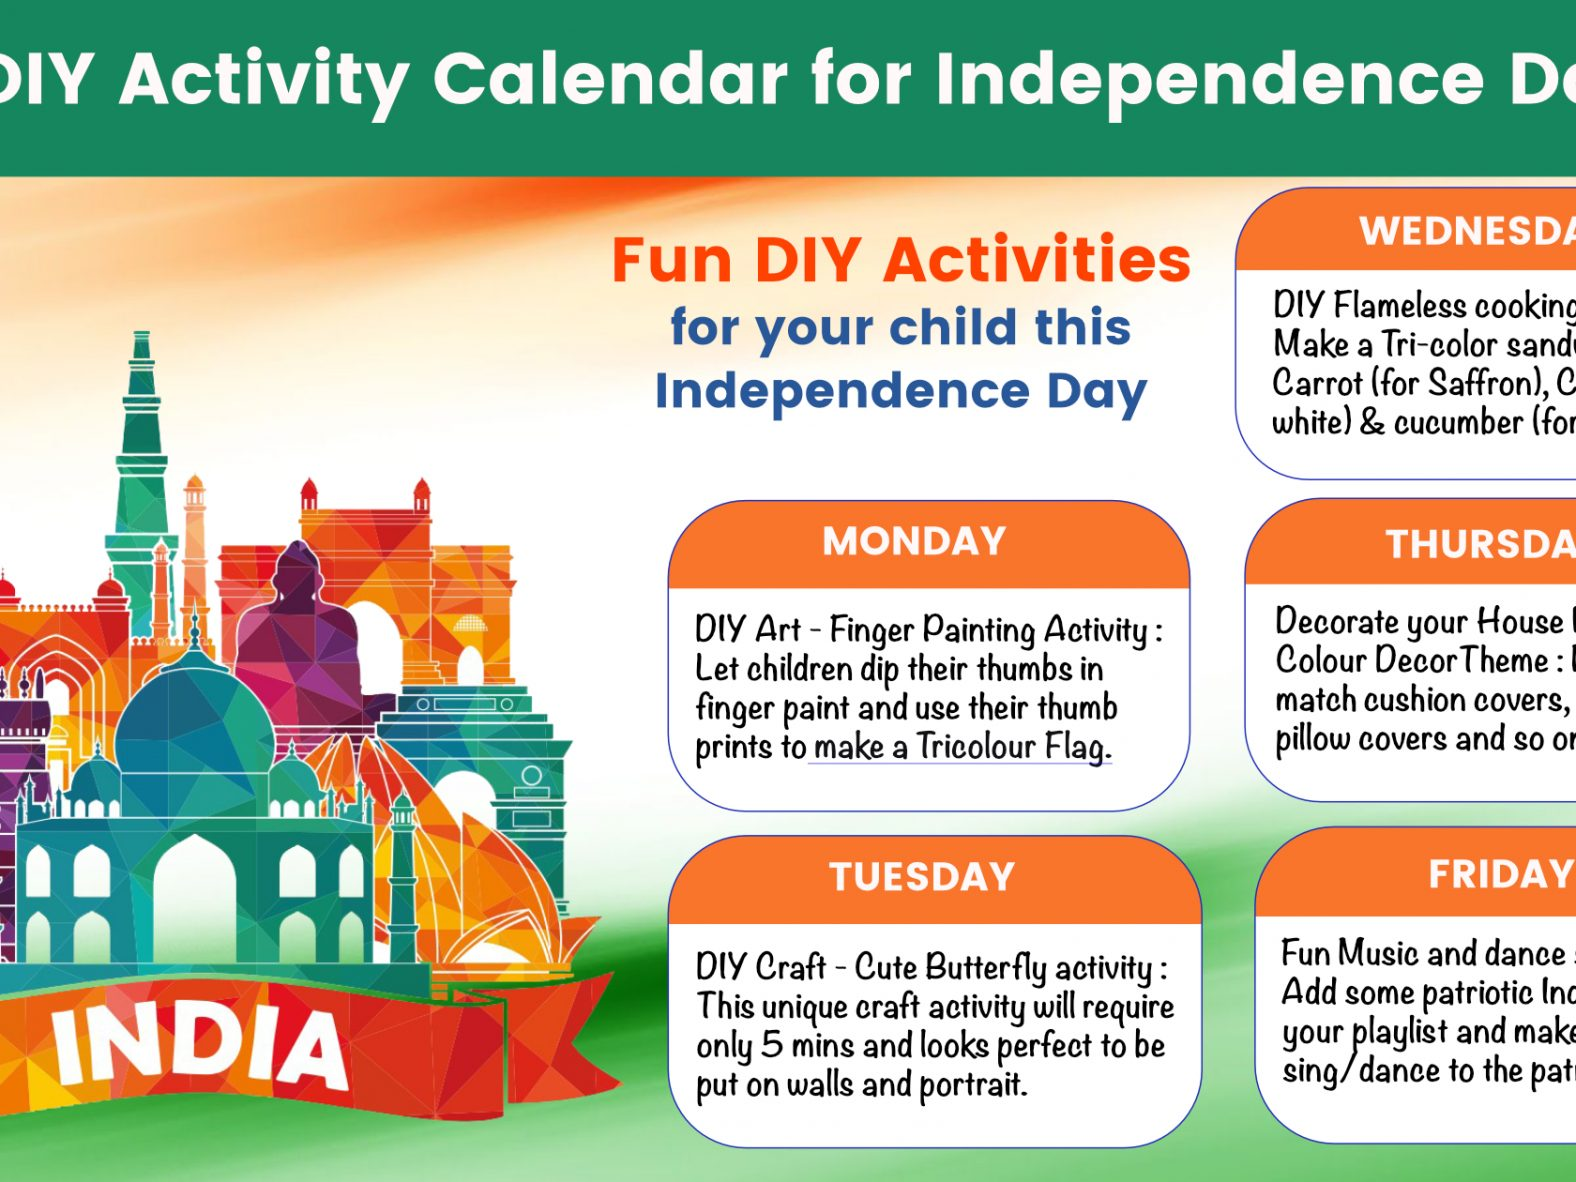 independence day activities for your children